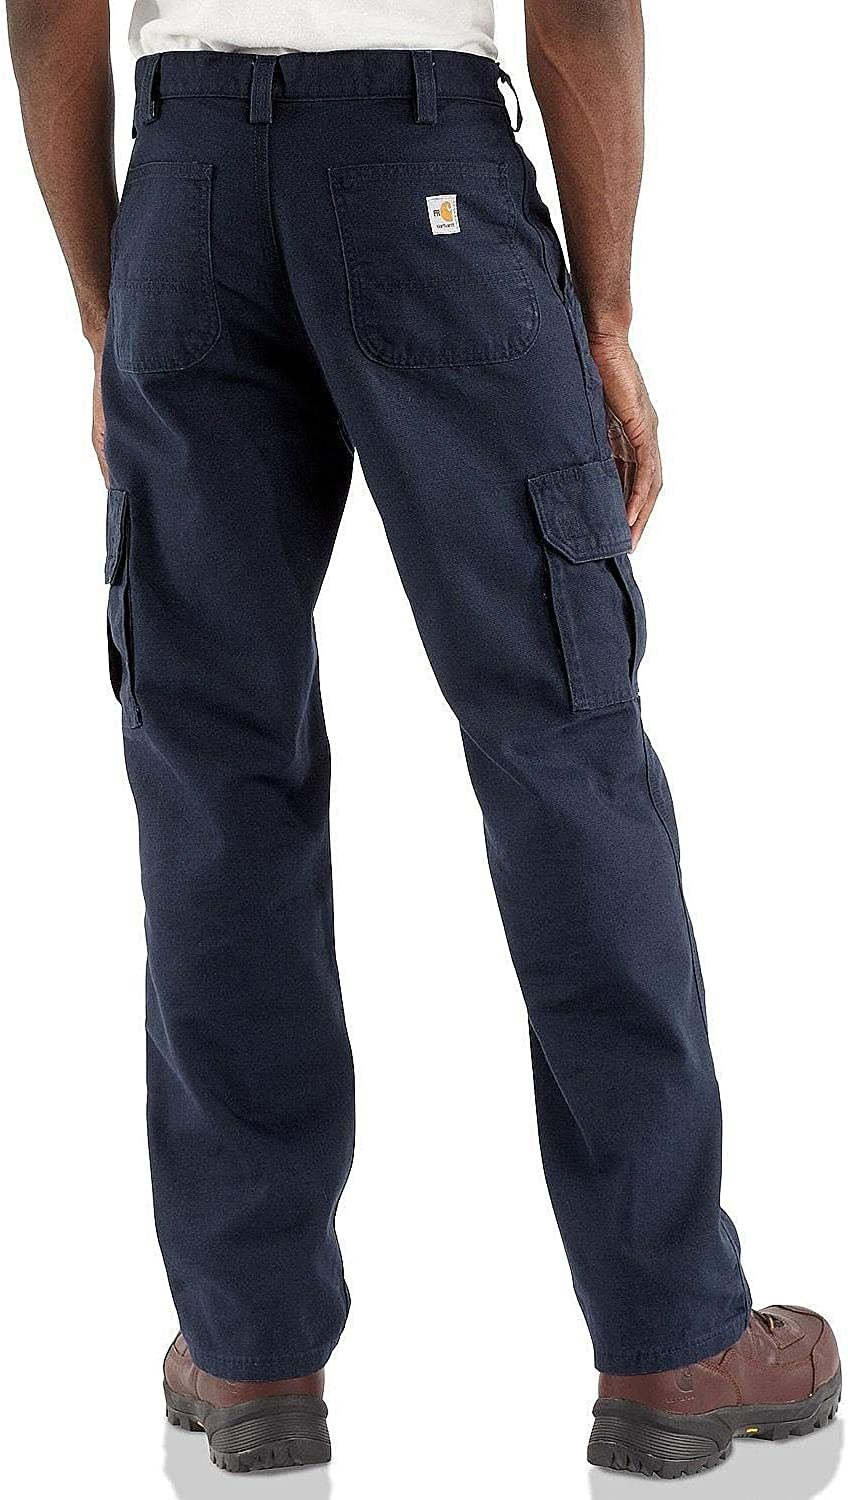 Carhartt It is very popular Men's Flame Resistant Pant Max 61% OFF Cargo